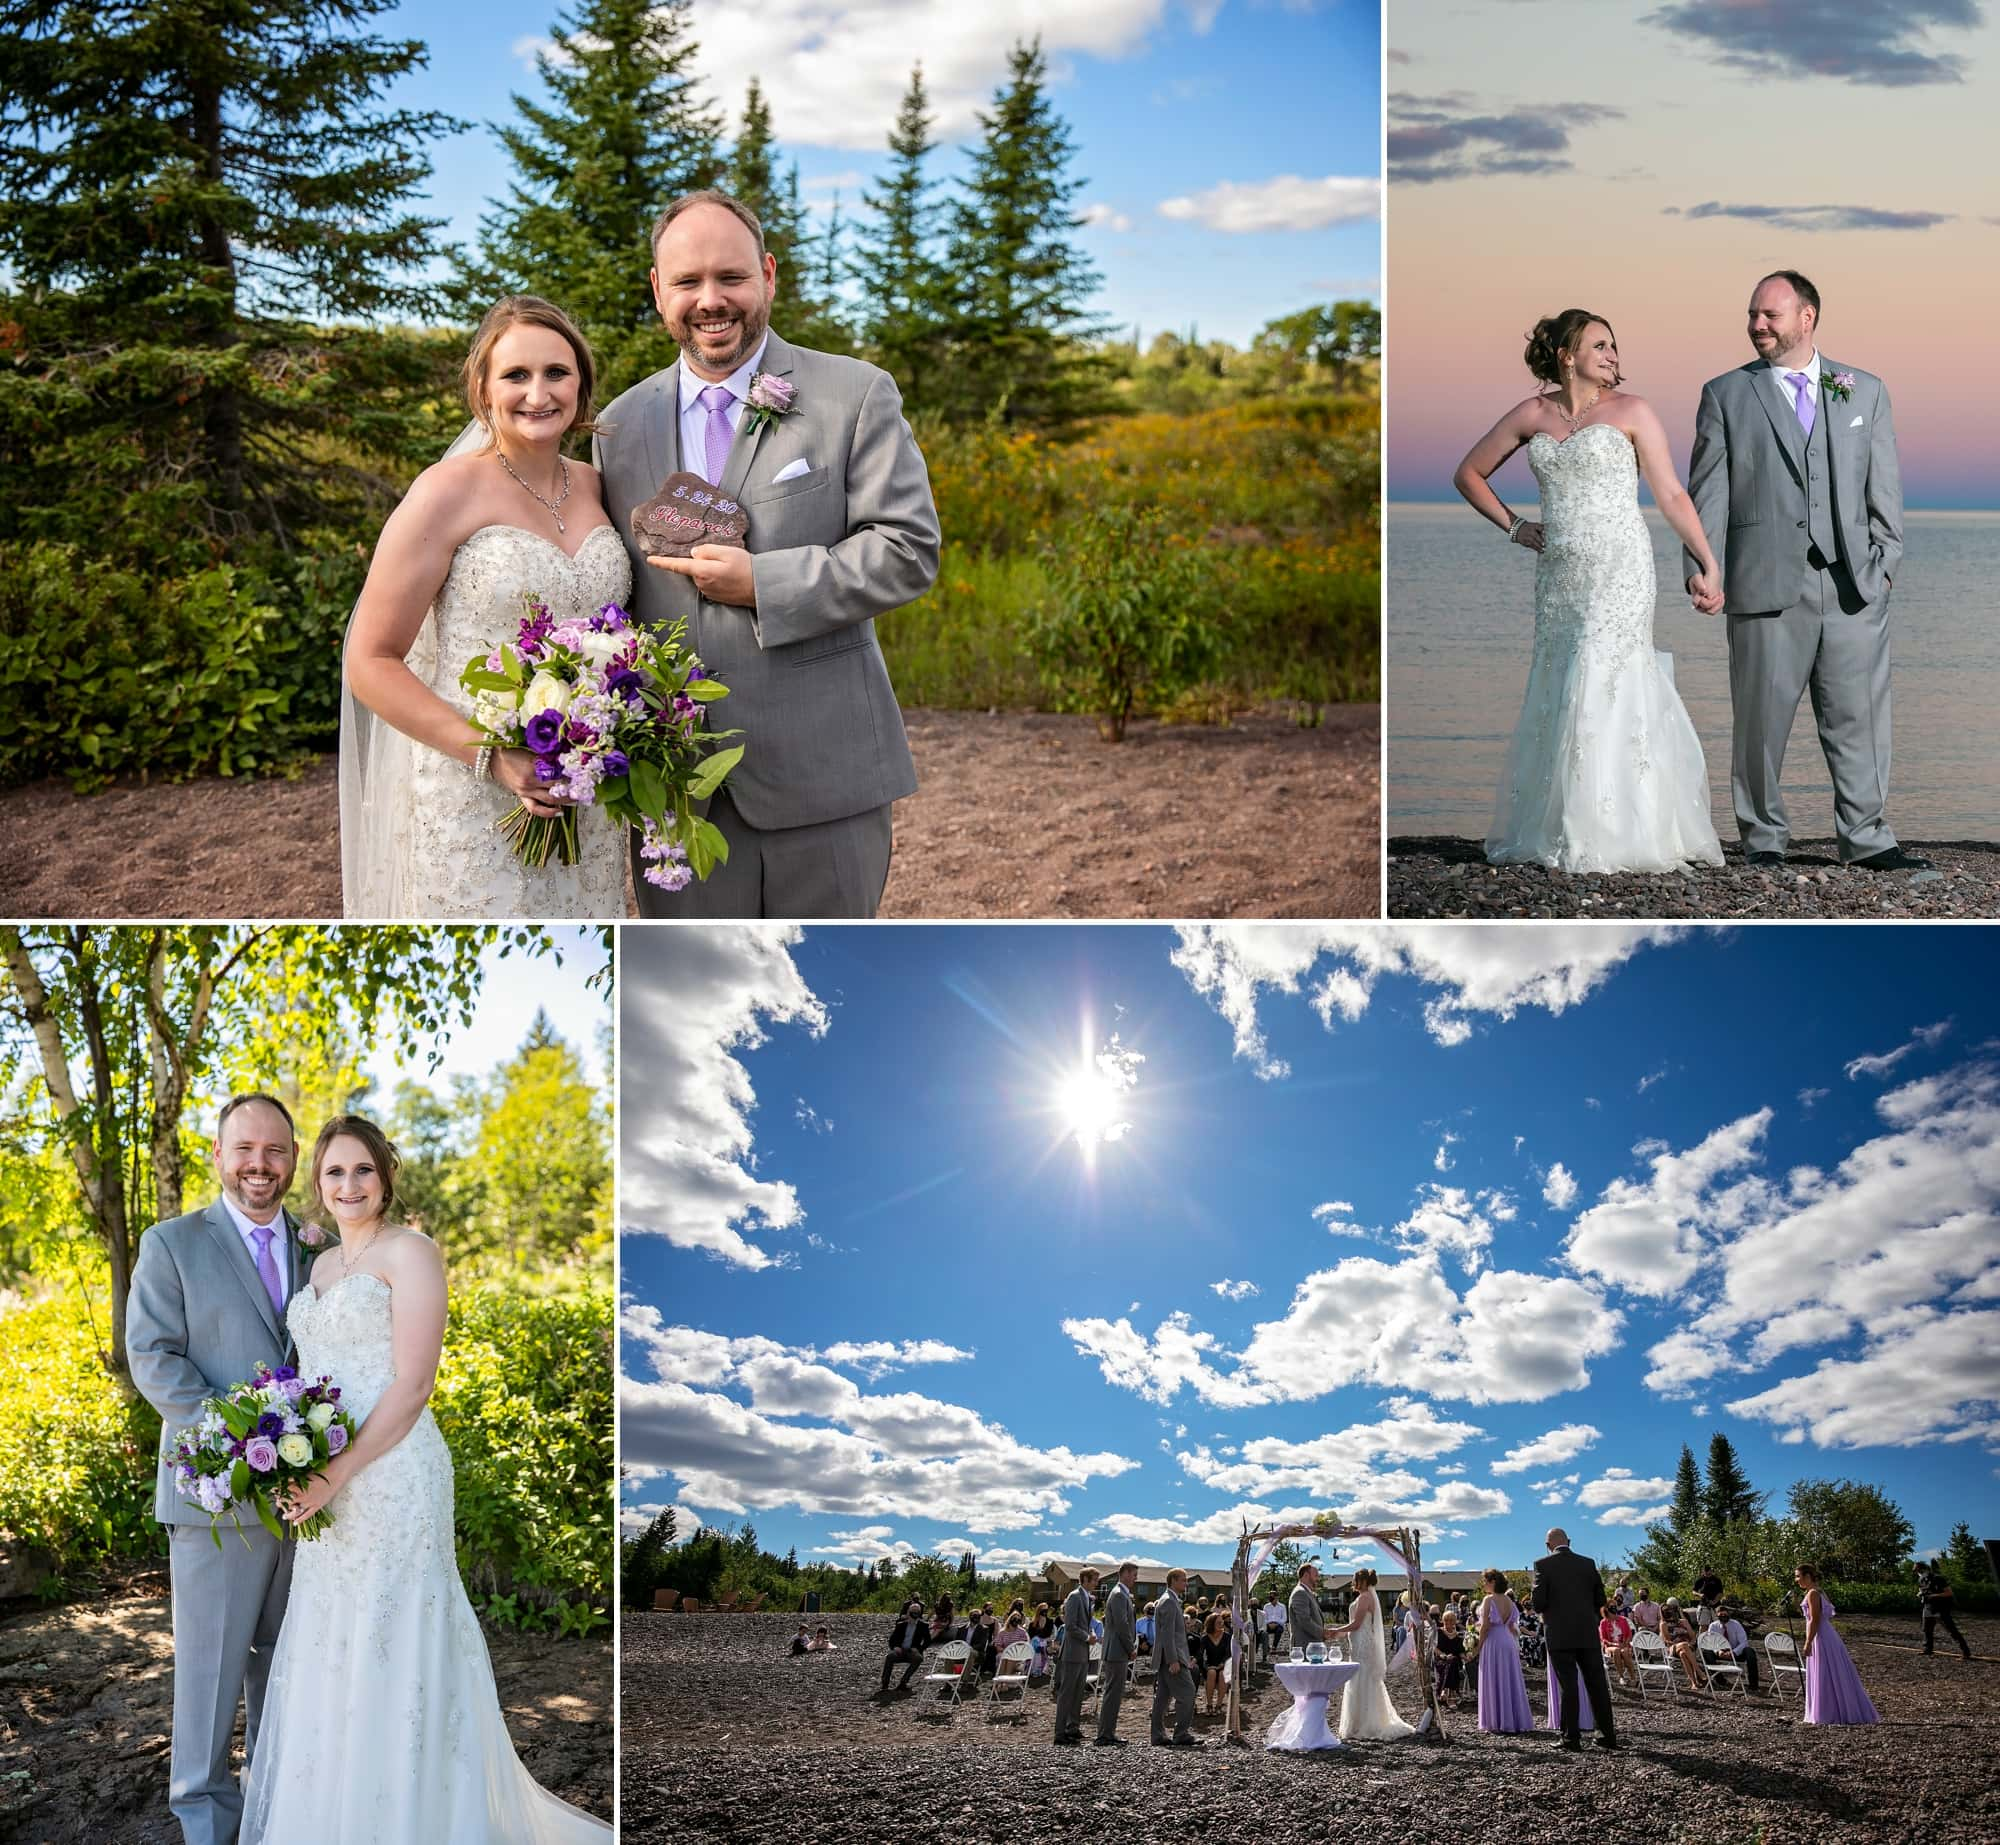 Kristi and Paul's North Shore wedding photos at Superior Shores Resort in Two Harbors, Minnesota.